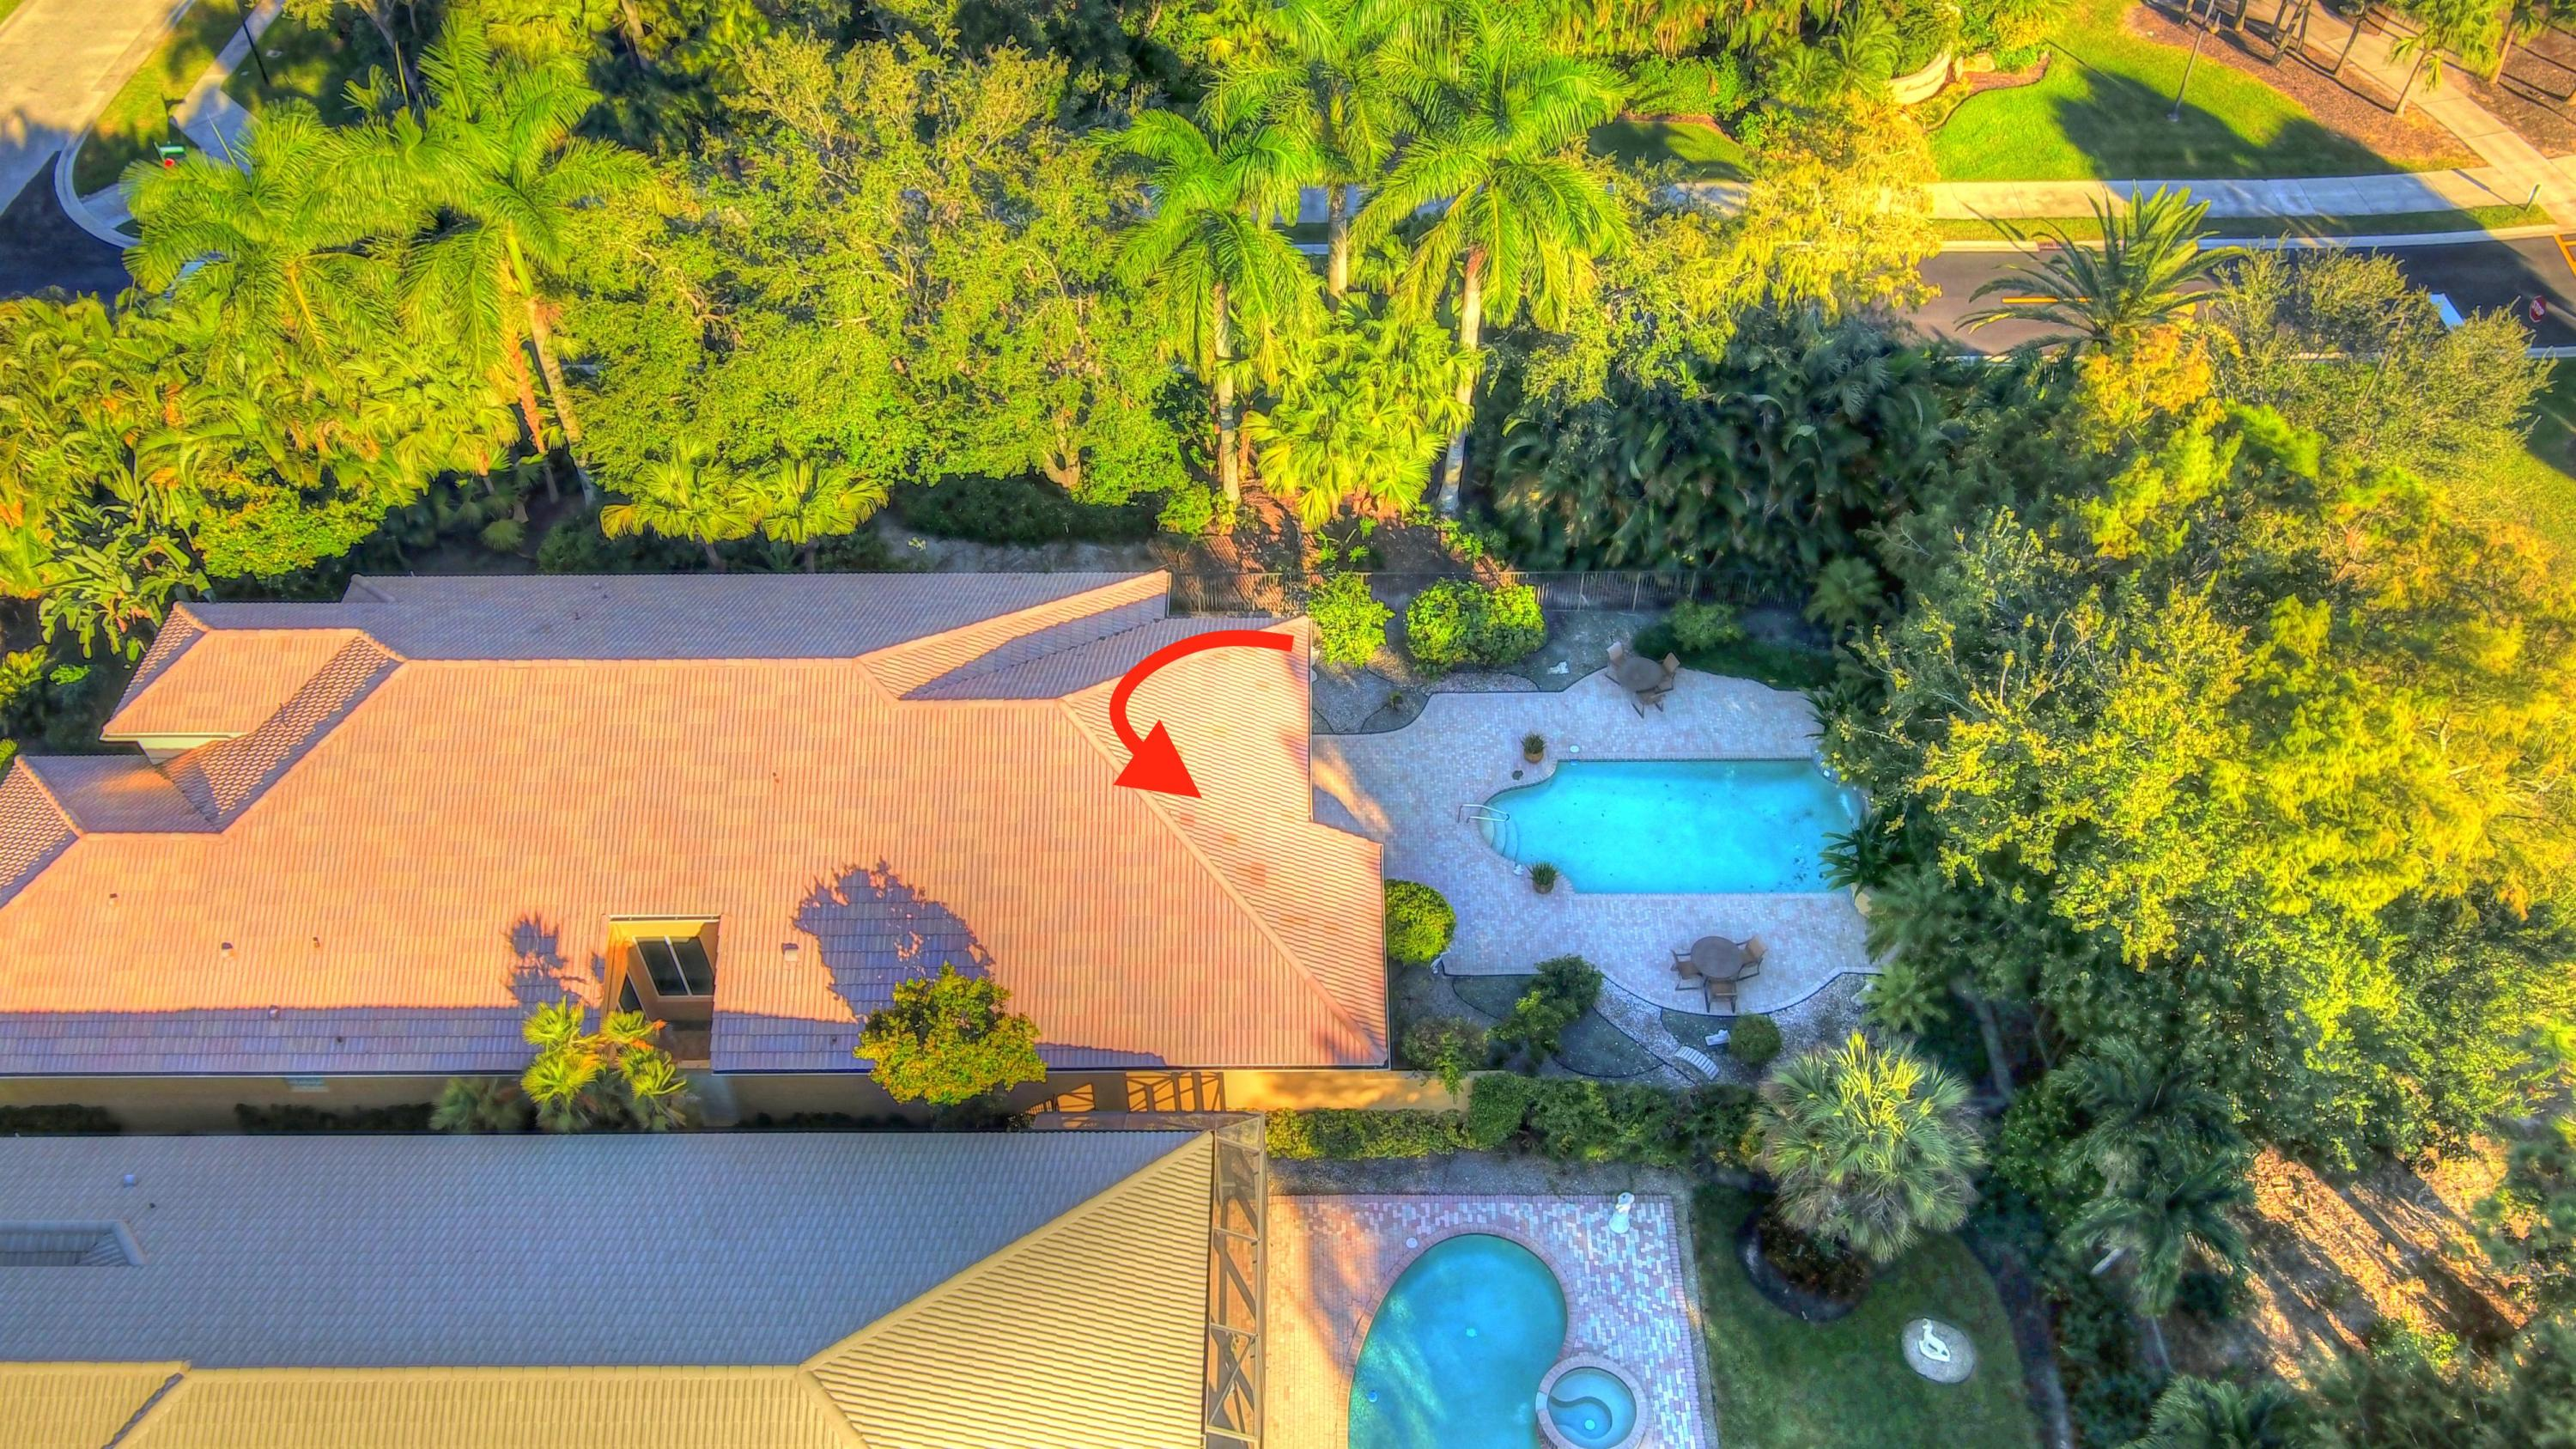 Aerial view with pool